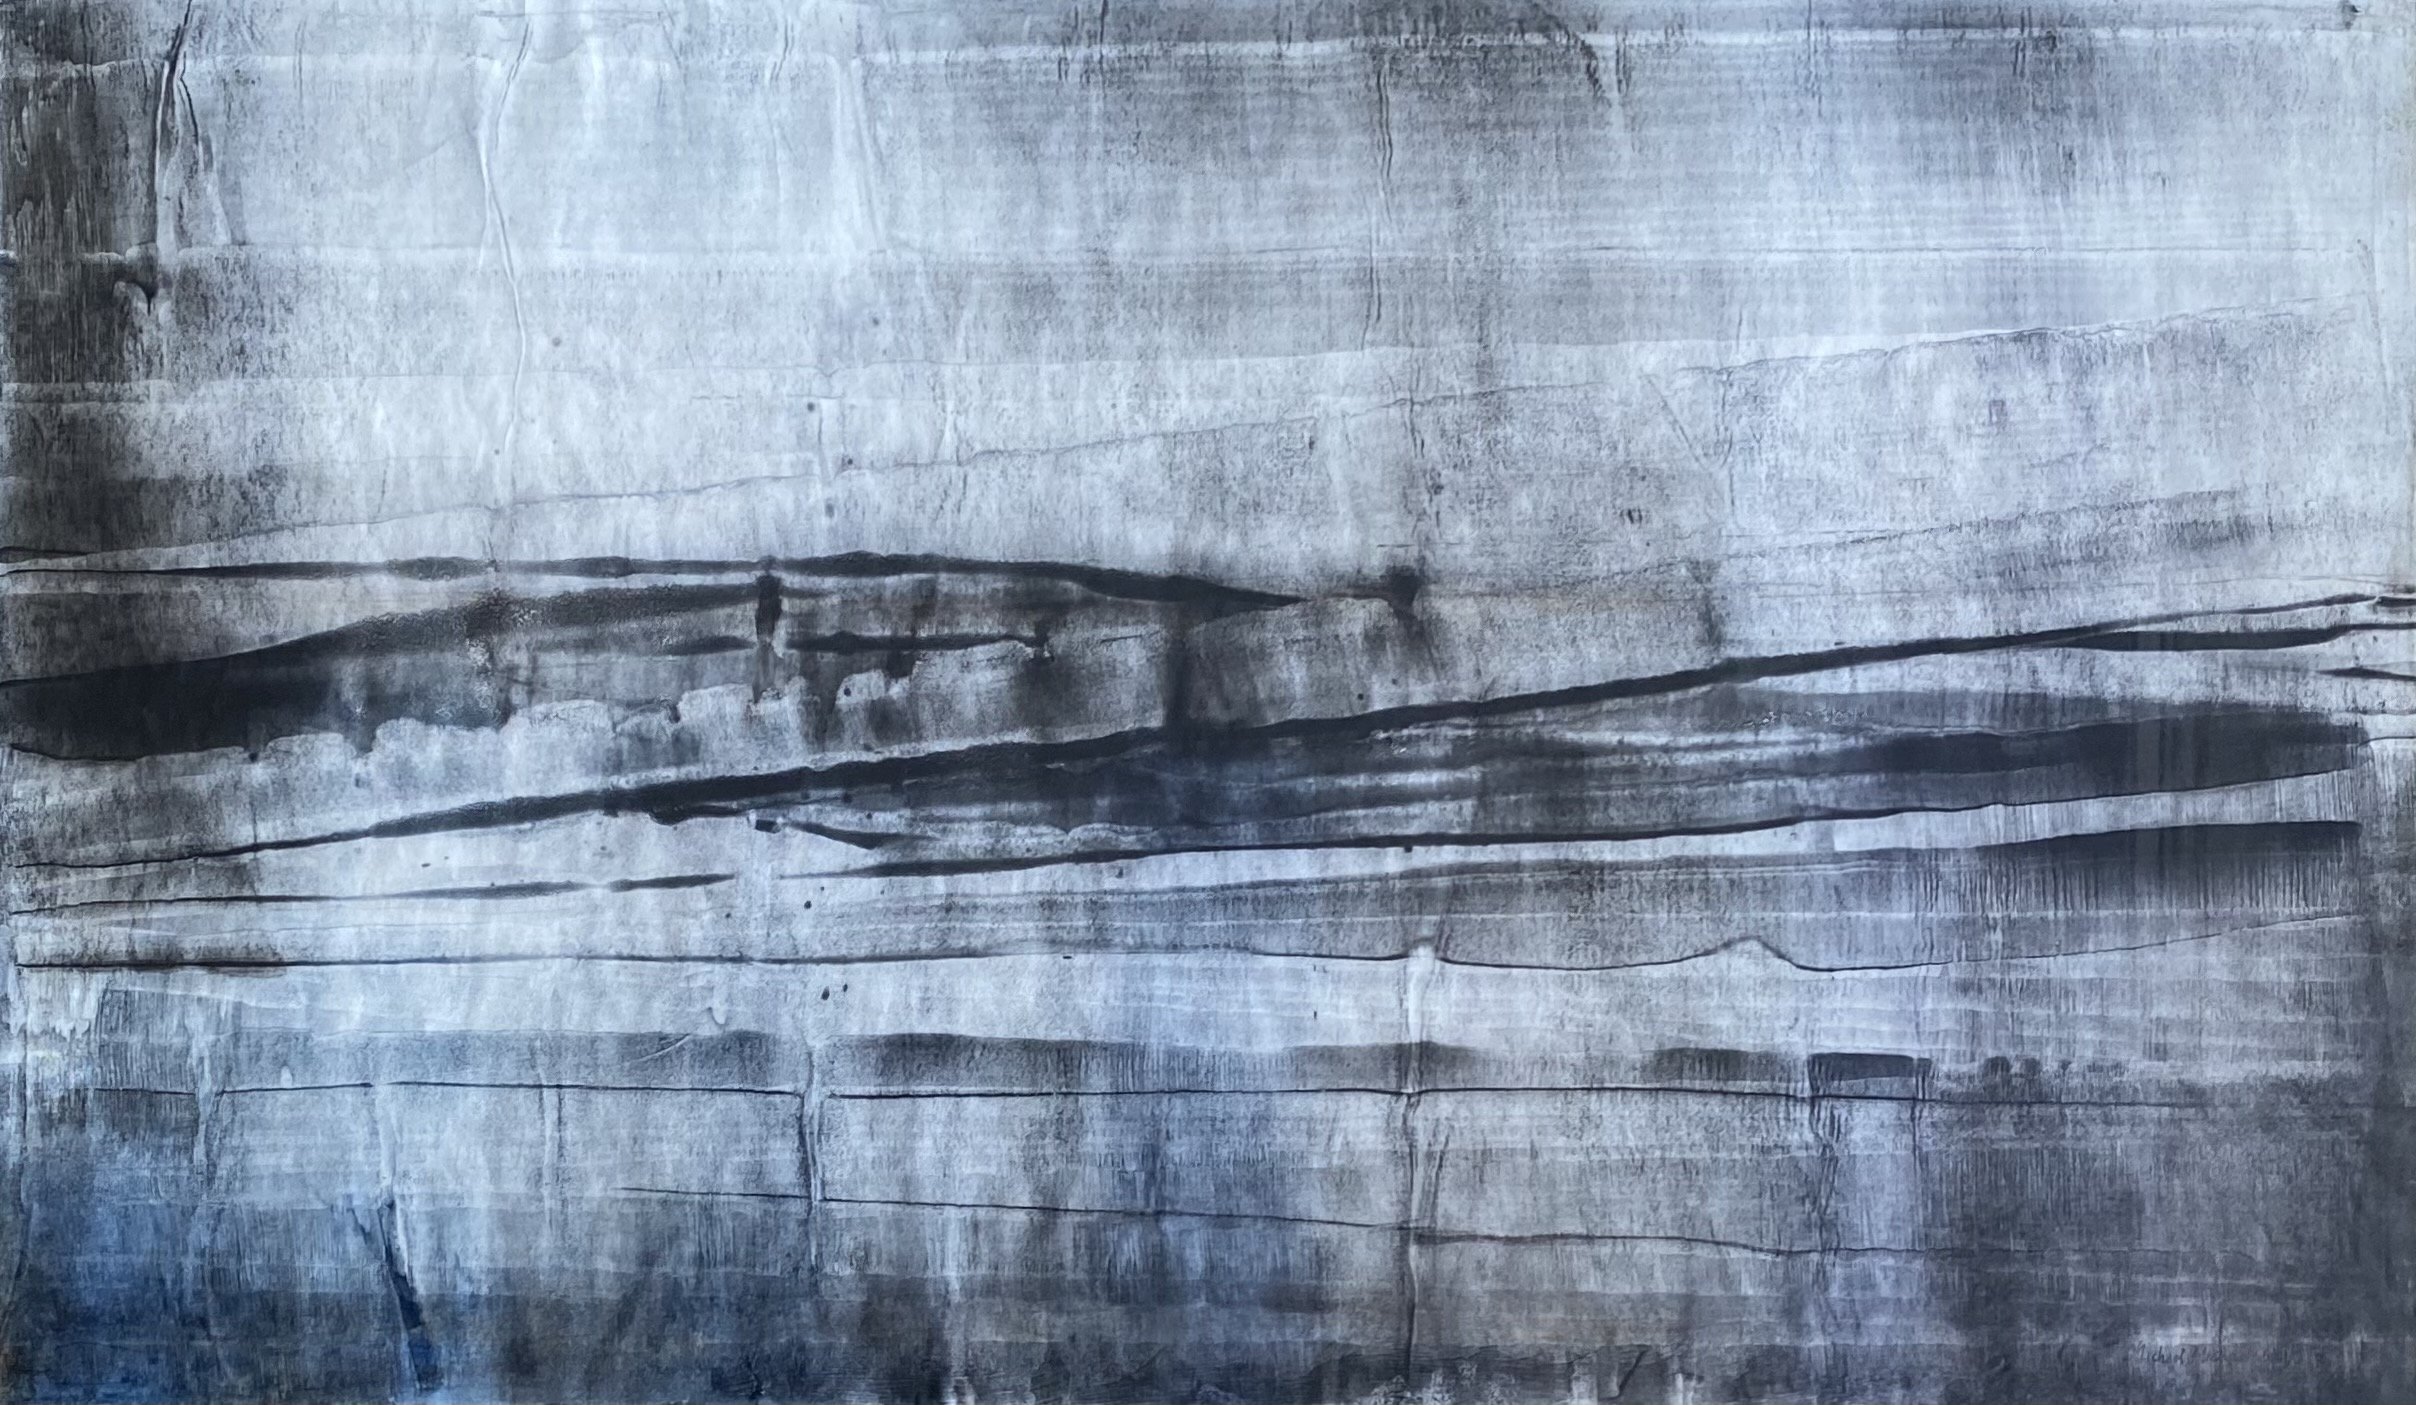 Michael Michaeledes (Cypriot/British, 1922 - 2015) (AR), untitled 1958, ink on paper, 45 x 77 cm.